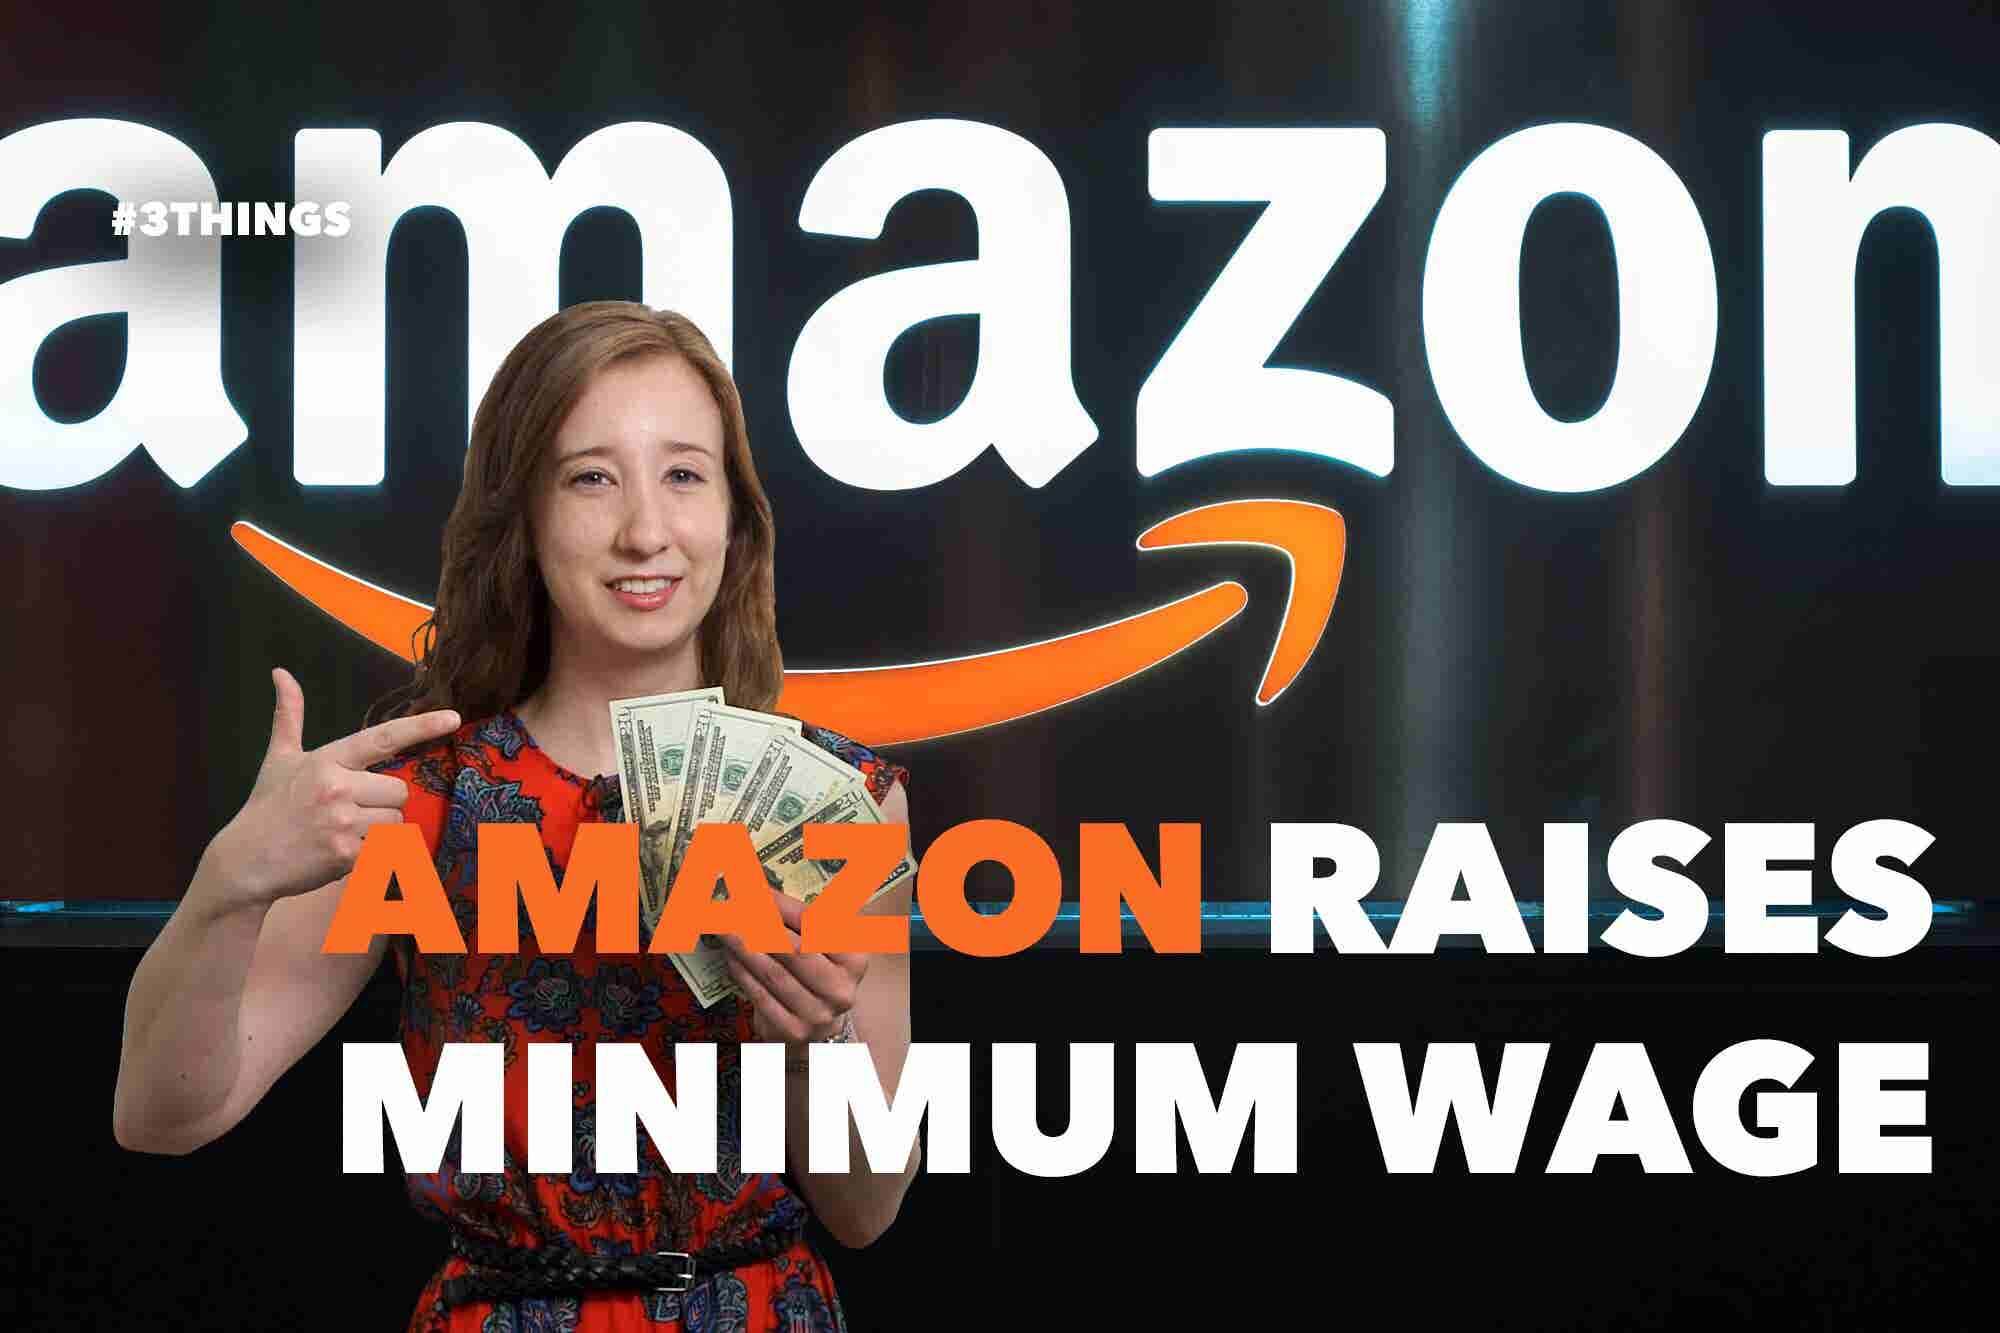 350,000 Amazon Workers Get Raises. 3 Things to Know Today.